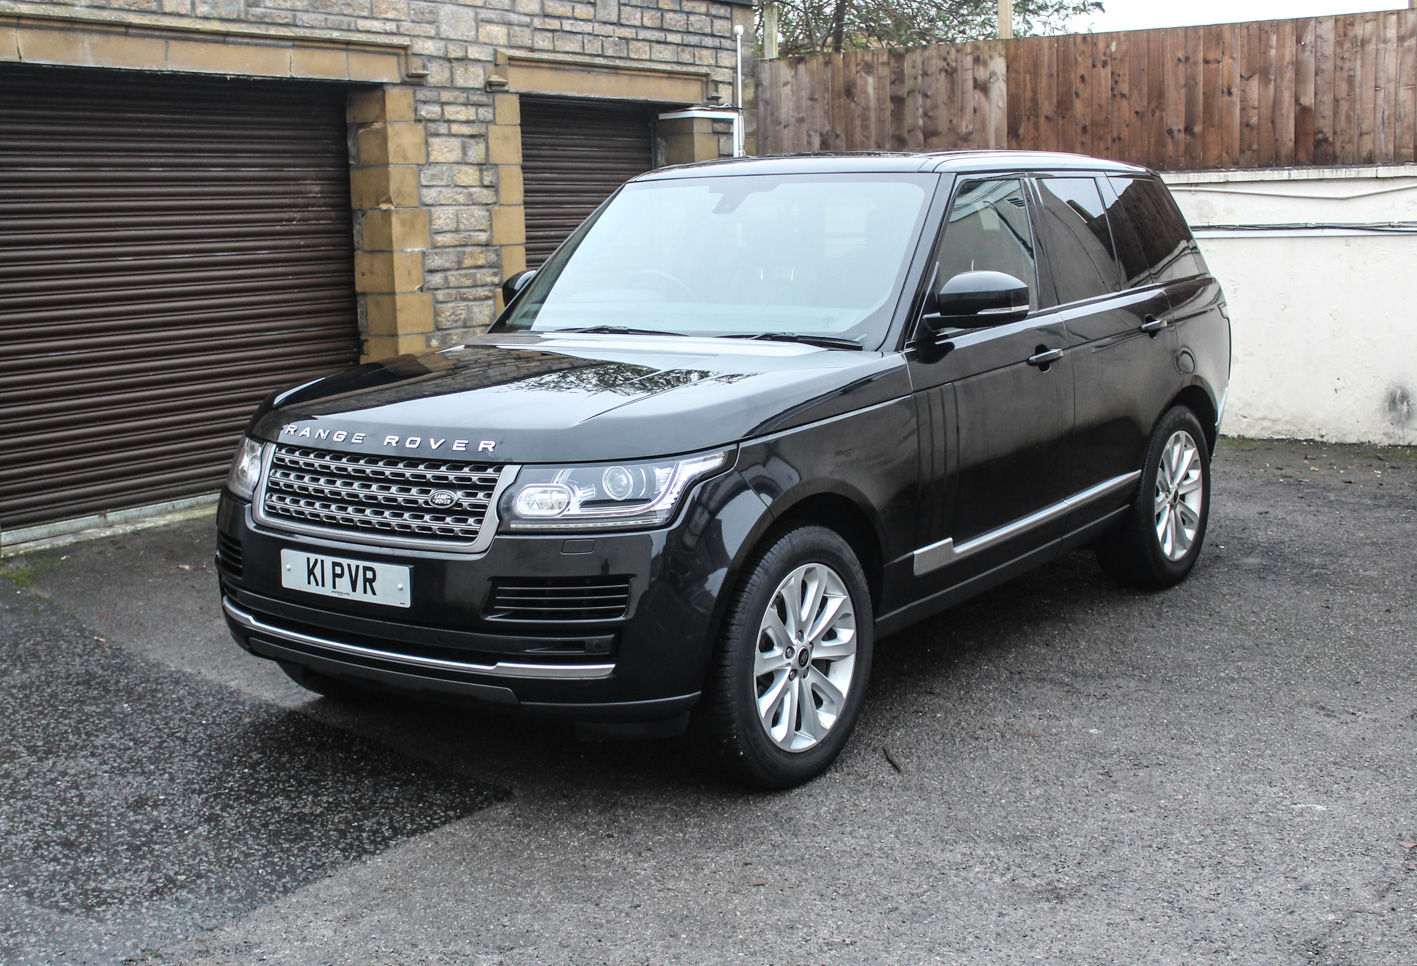 sold 2013 range rover vogue cars of somerset. Black Bedroom Furniture Sets. Home Design Ideas